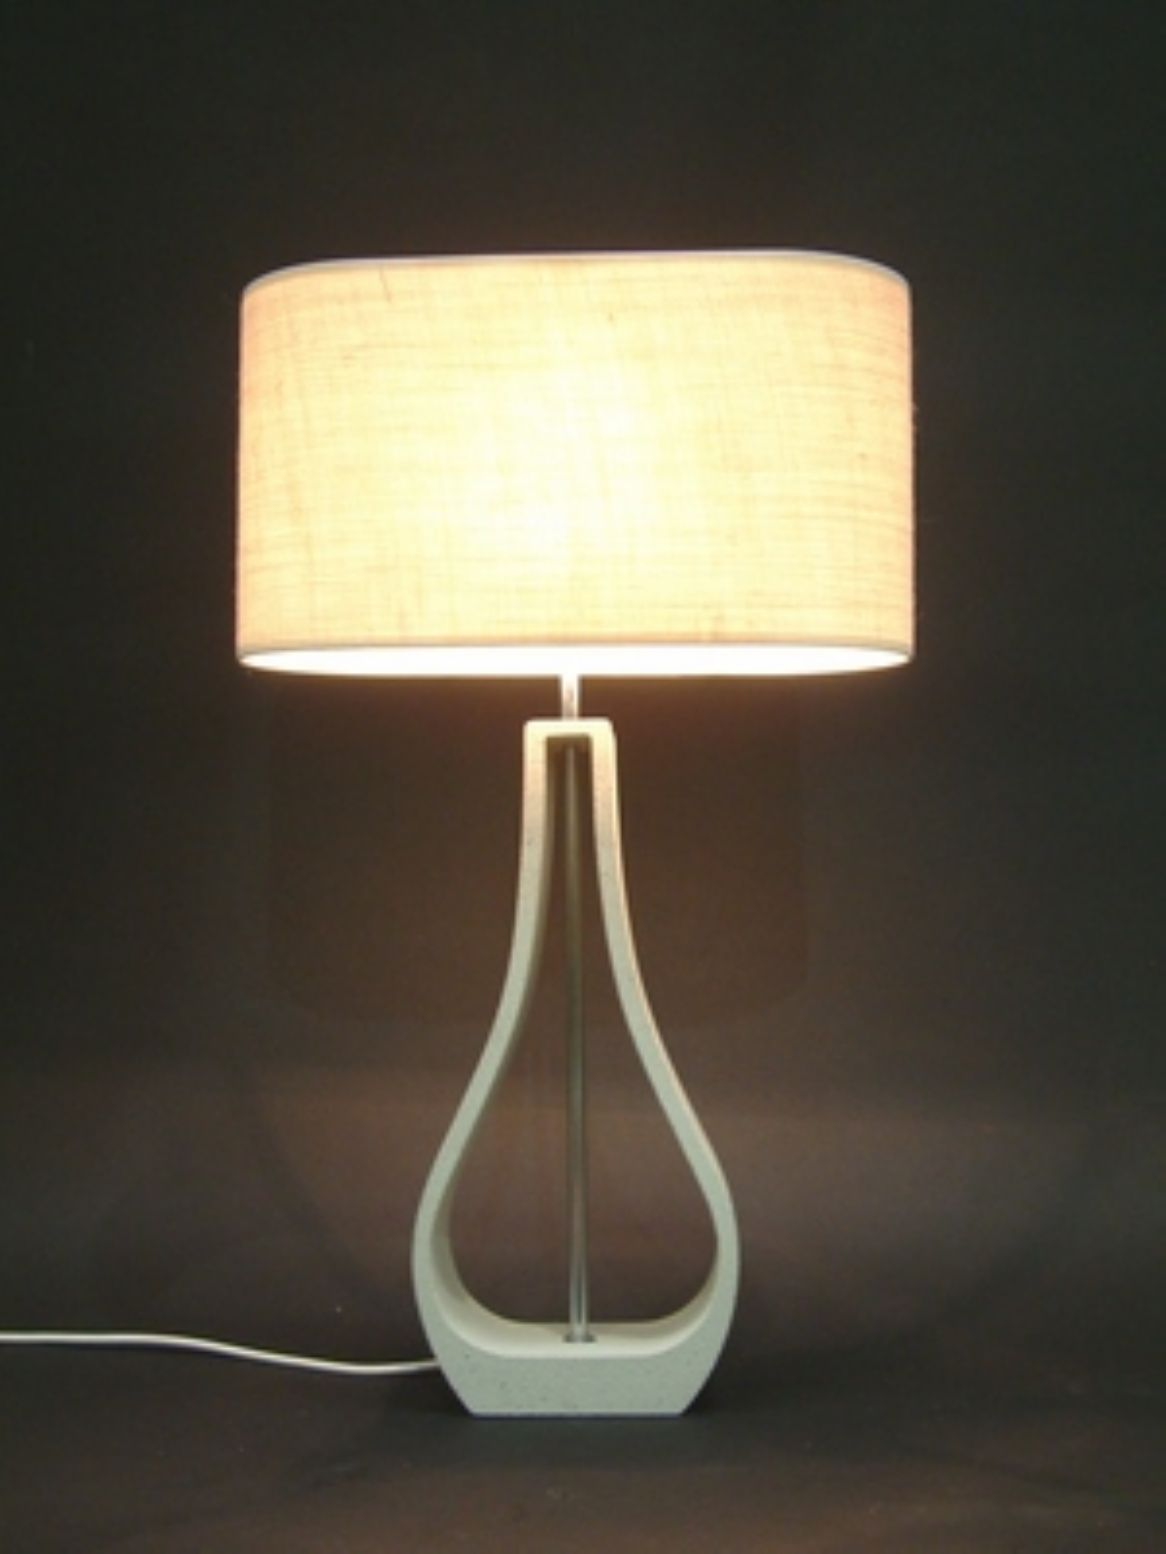 Decorative Hollow Cream Table Lamp With A Cream Shade In 2020 Cream Table Lamps Table Lamp Lamp